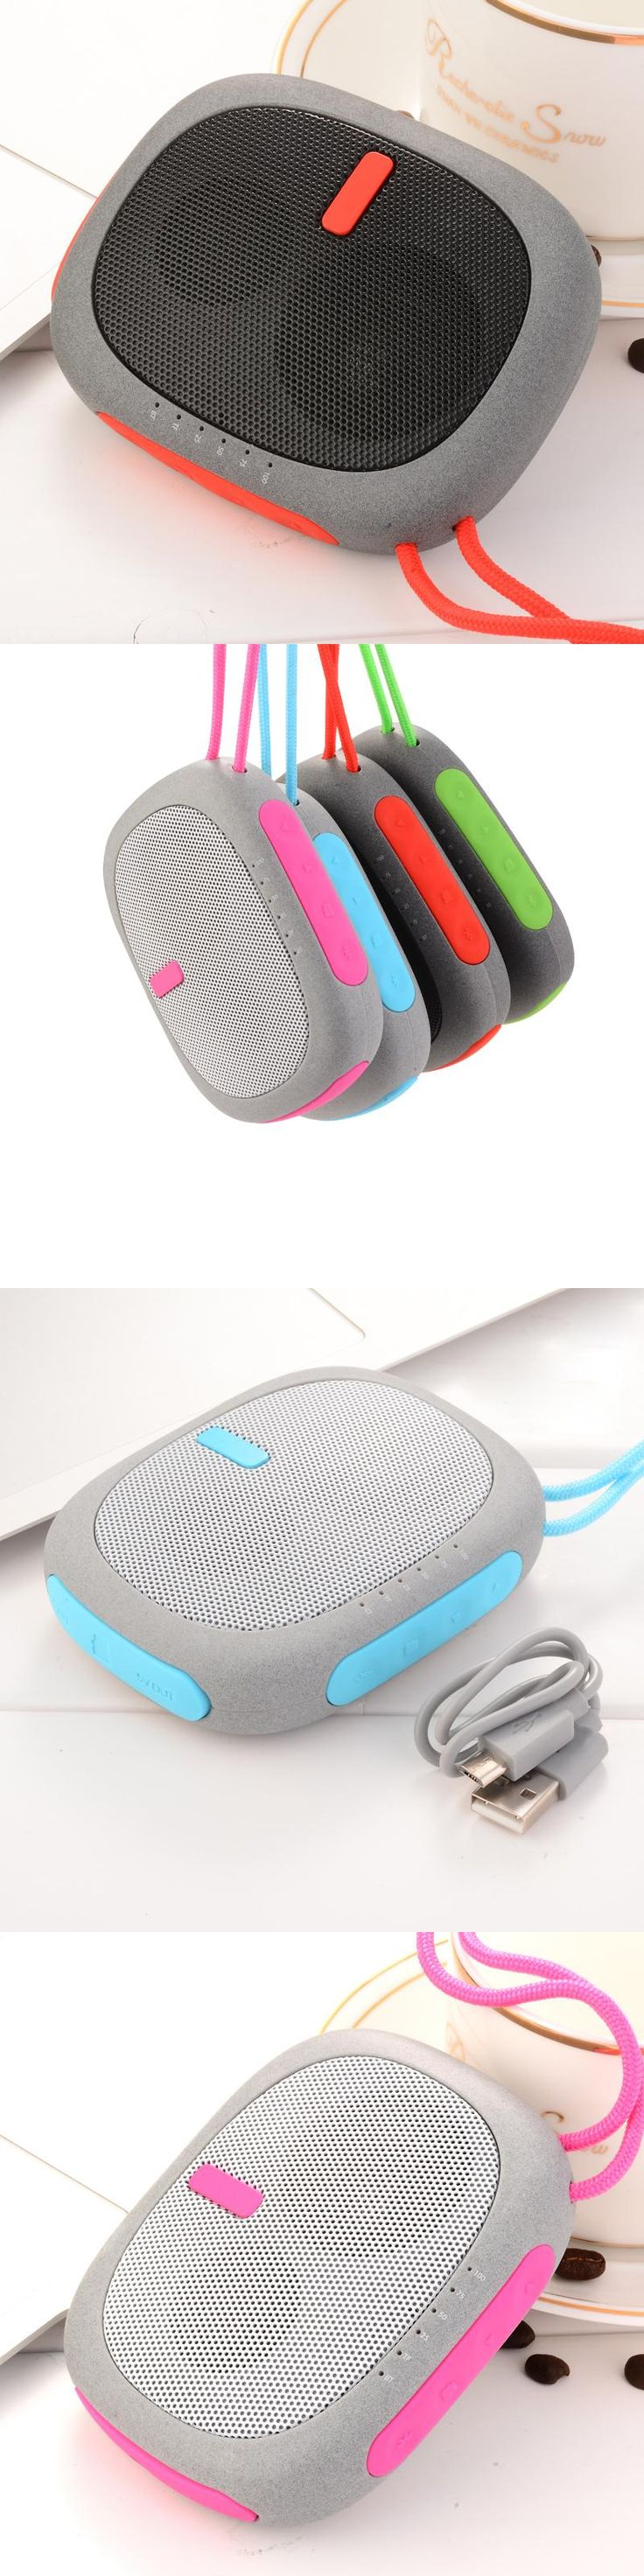 MINI Wireless Portable Bluetooth Sport  Music Stereo Speaker pocket Design Build-in 2600mAH Lithium Battery Support TF Card